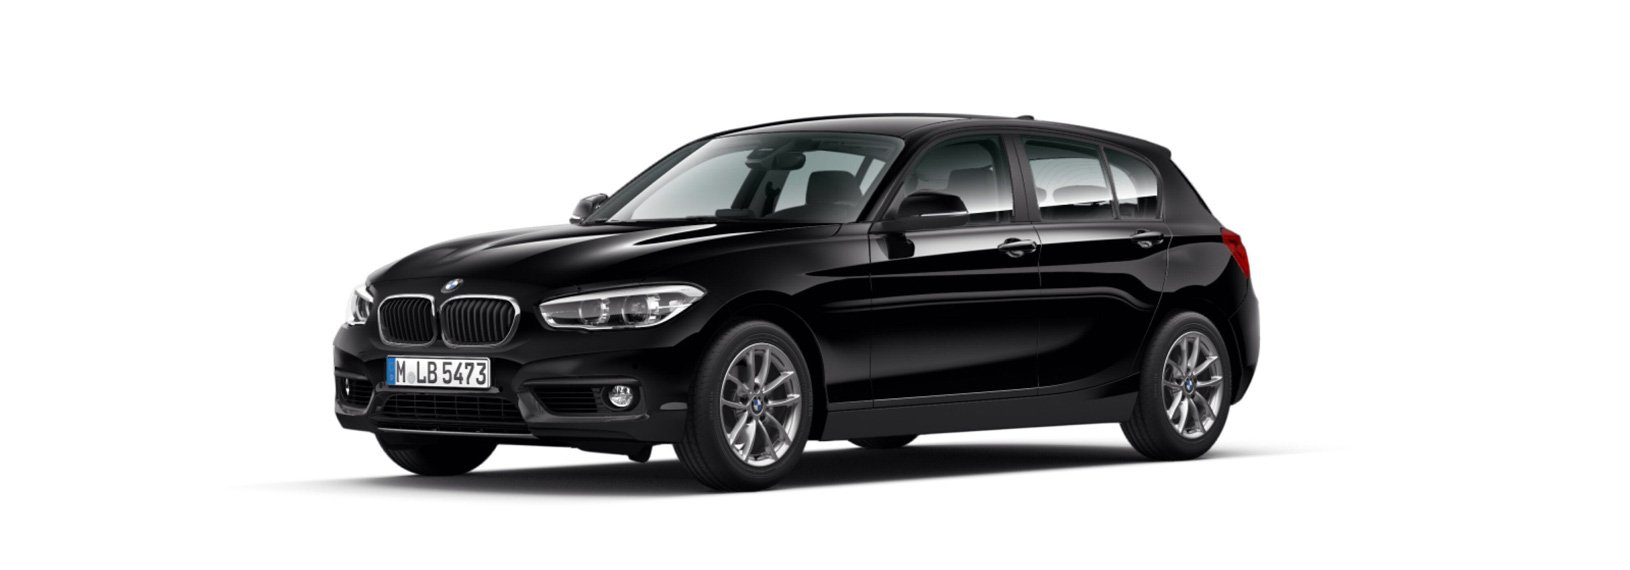 bmw 118i 5 t rer modell advantage aussenfarbe schwarz. Black Bedroom Furniture Sets. Home Design Ideas